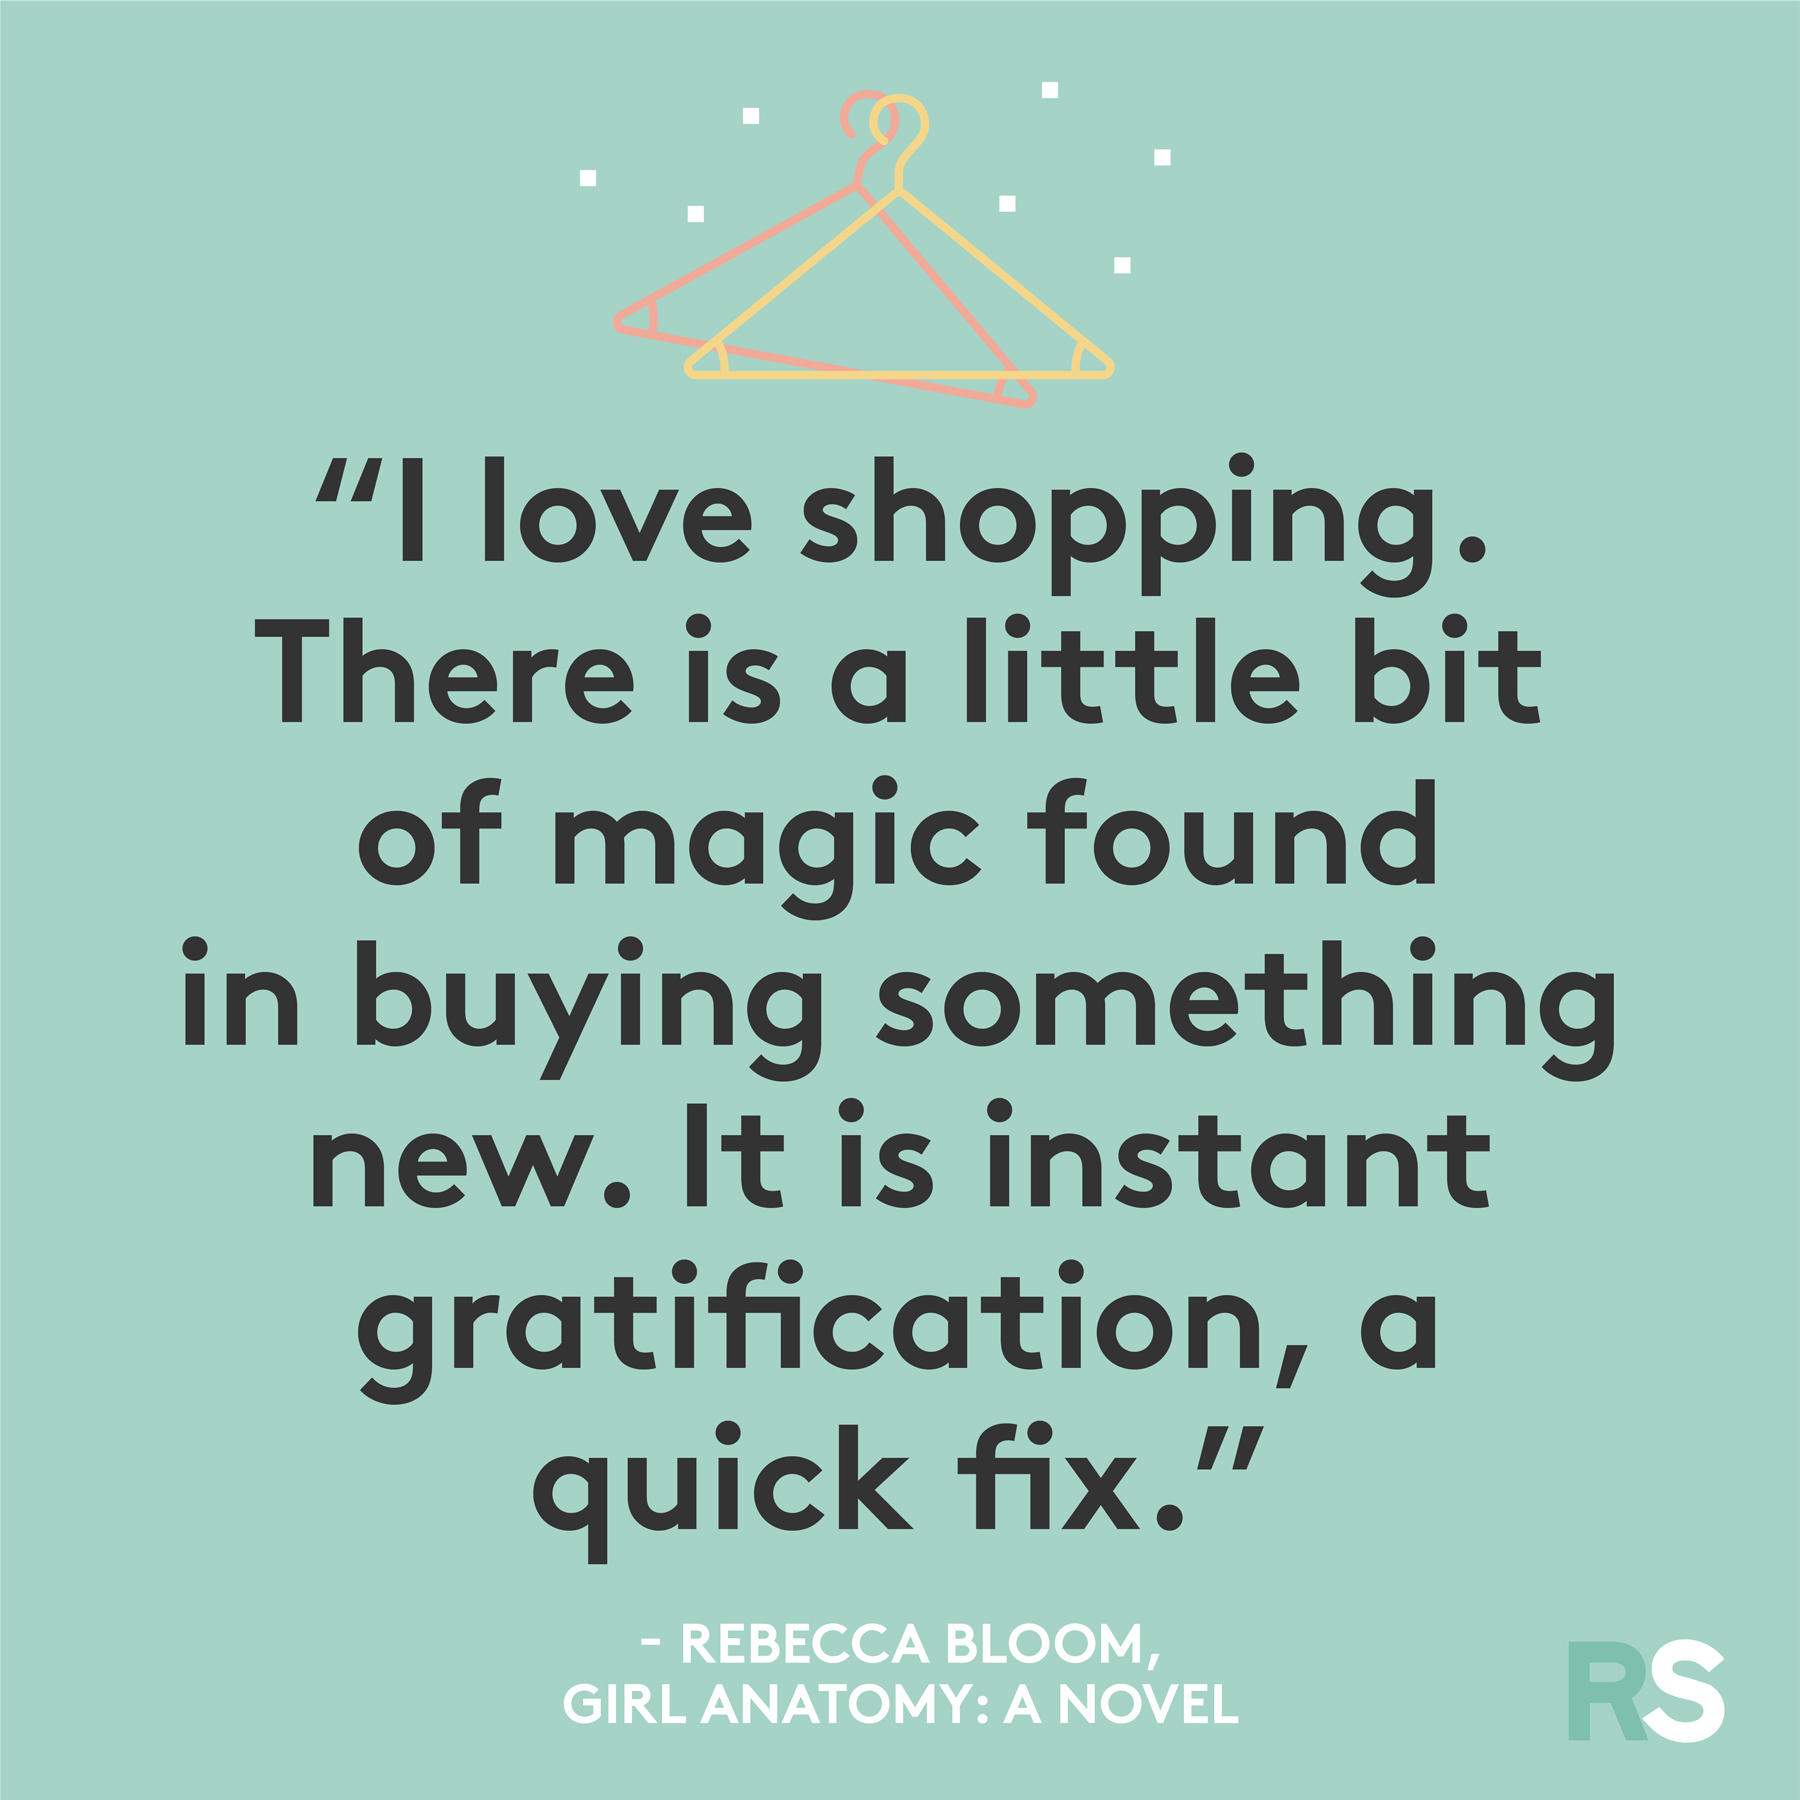 Black Friday funny quotes, sayings - Rebecca Bloom